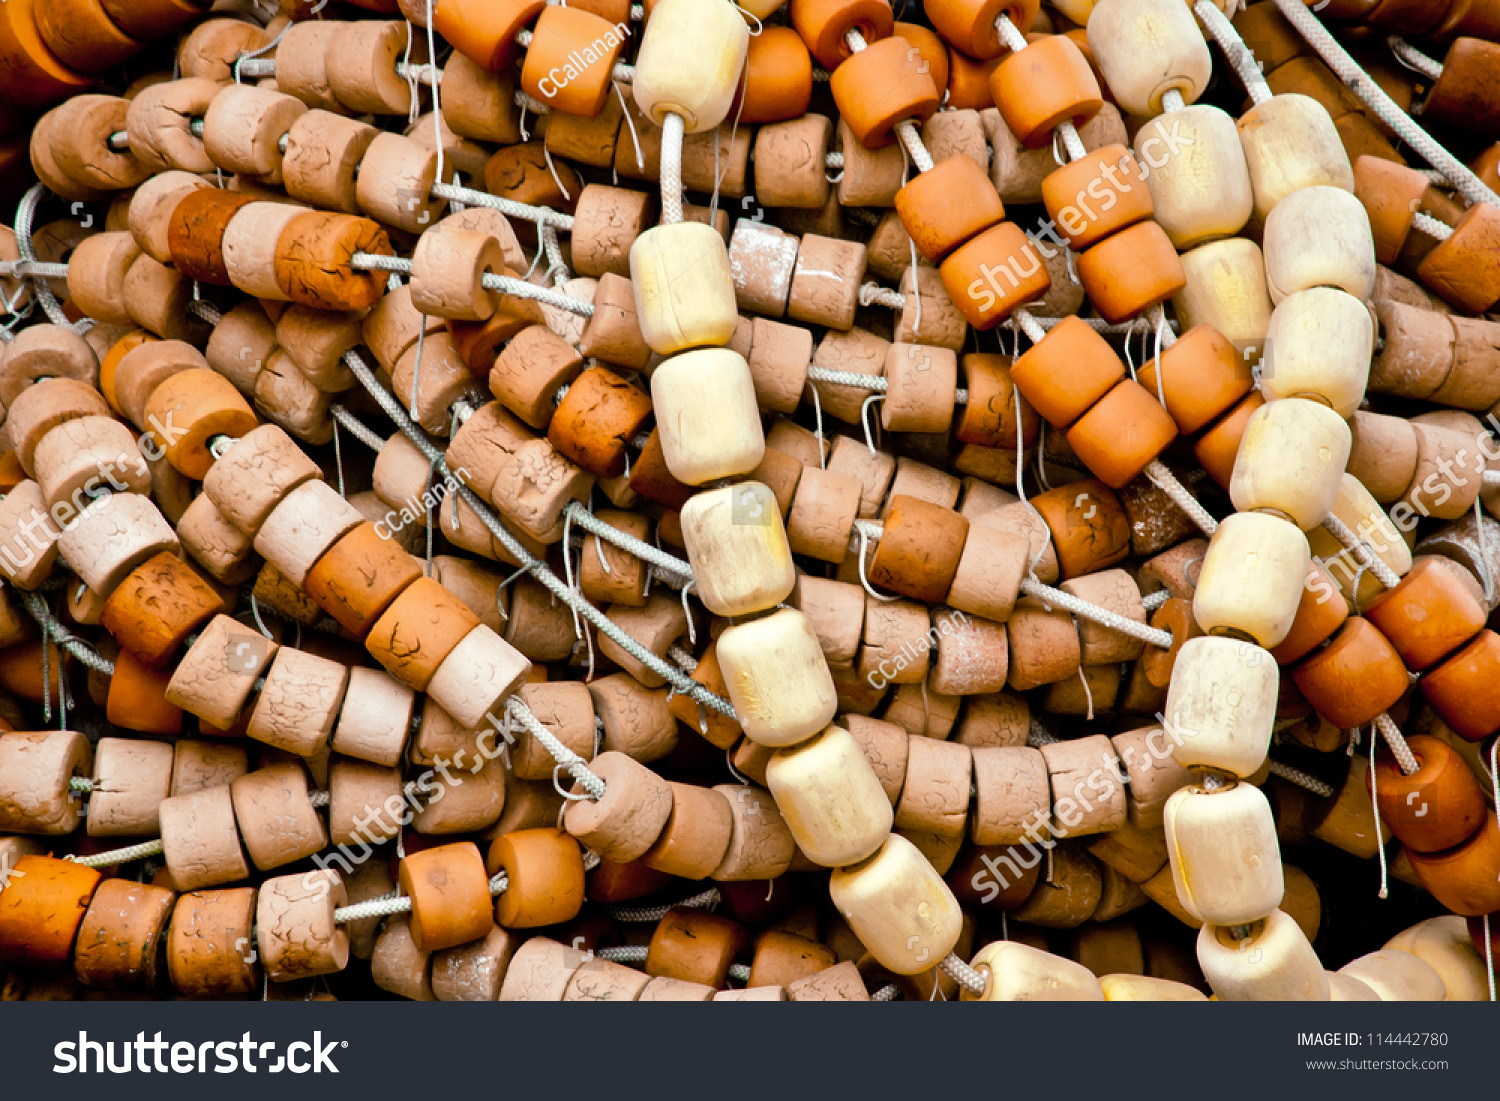 Commercial fishing gear stock photo 114442780 shutterstock for Commercial fishing supplies